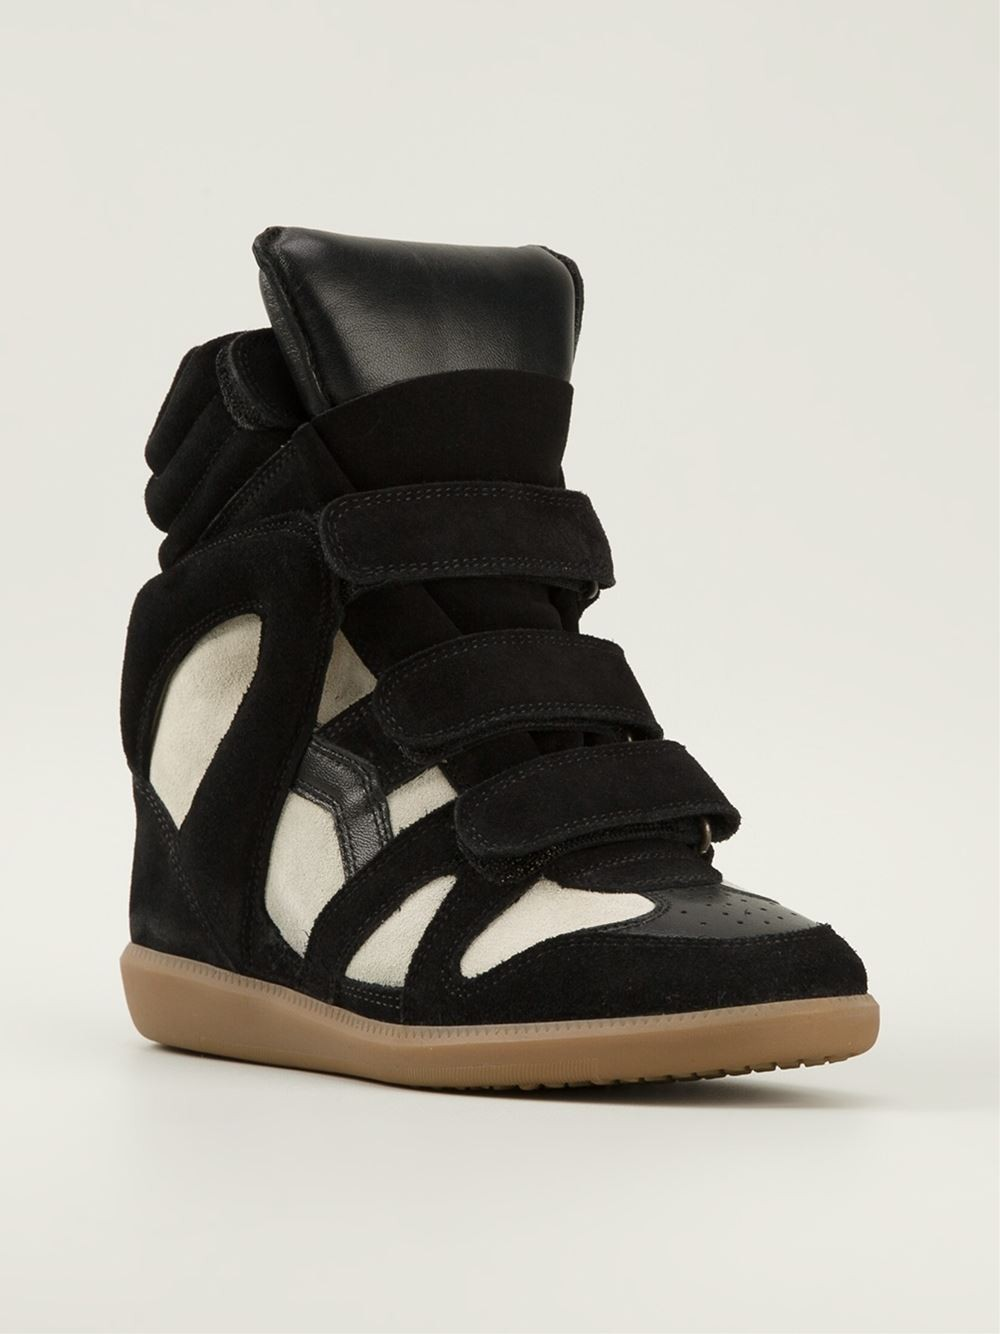 Isabel Marant White Black Women's Wedge Sneakers